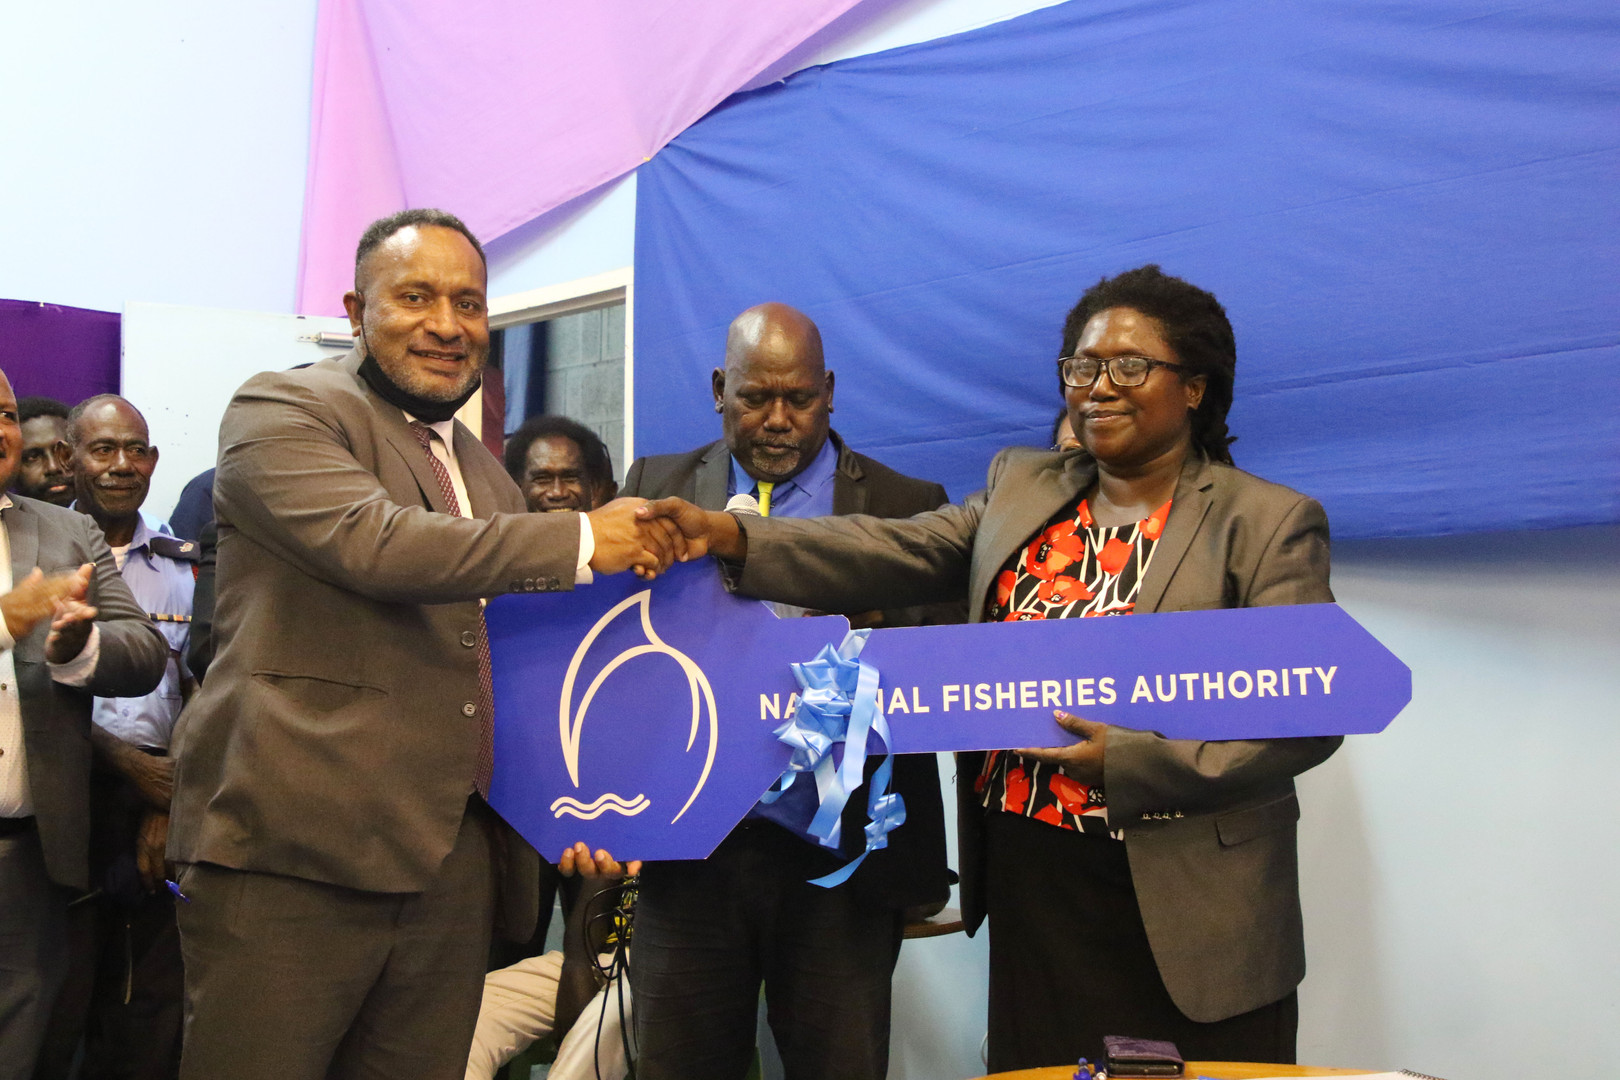 The Minister for Fisheries and Marine Resources, Hon. Dr Lino Tom presenting a key for a duplex accommodation for Fisheries officers in Buka